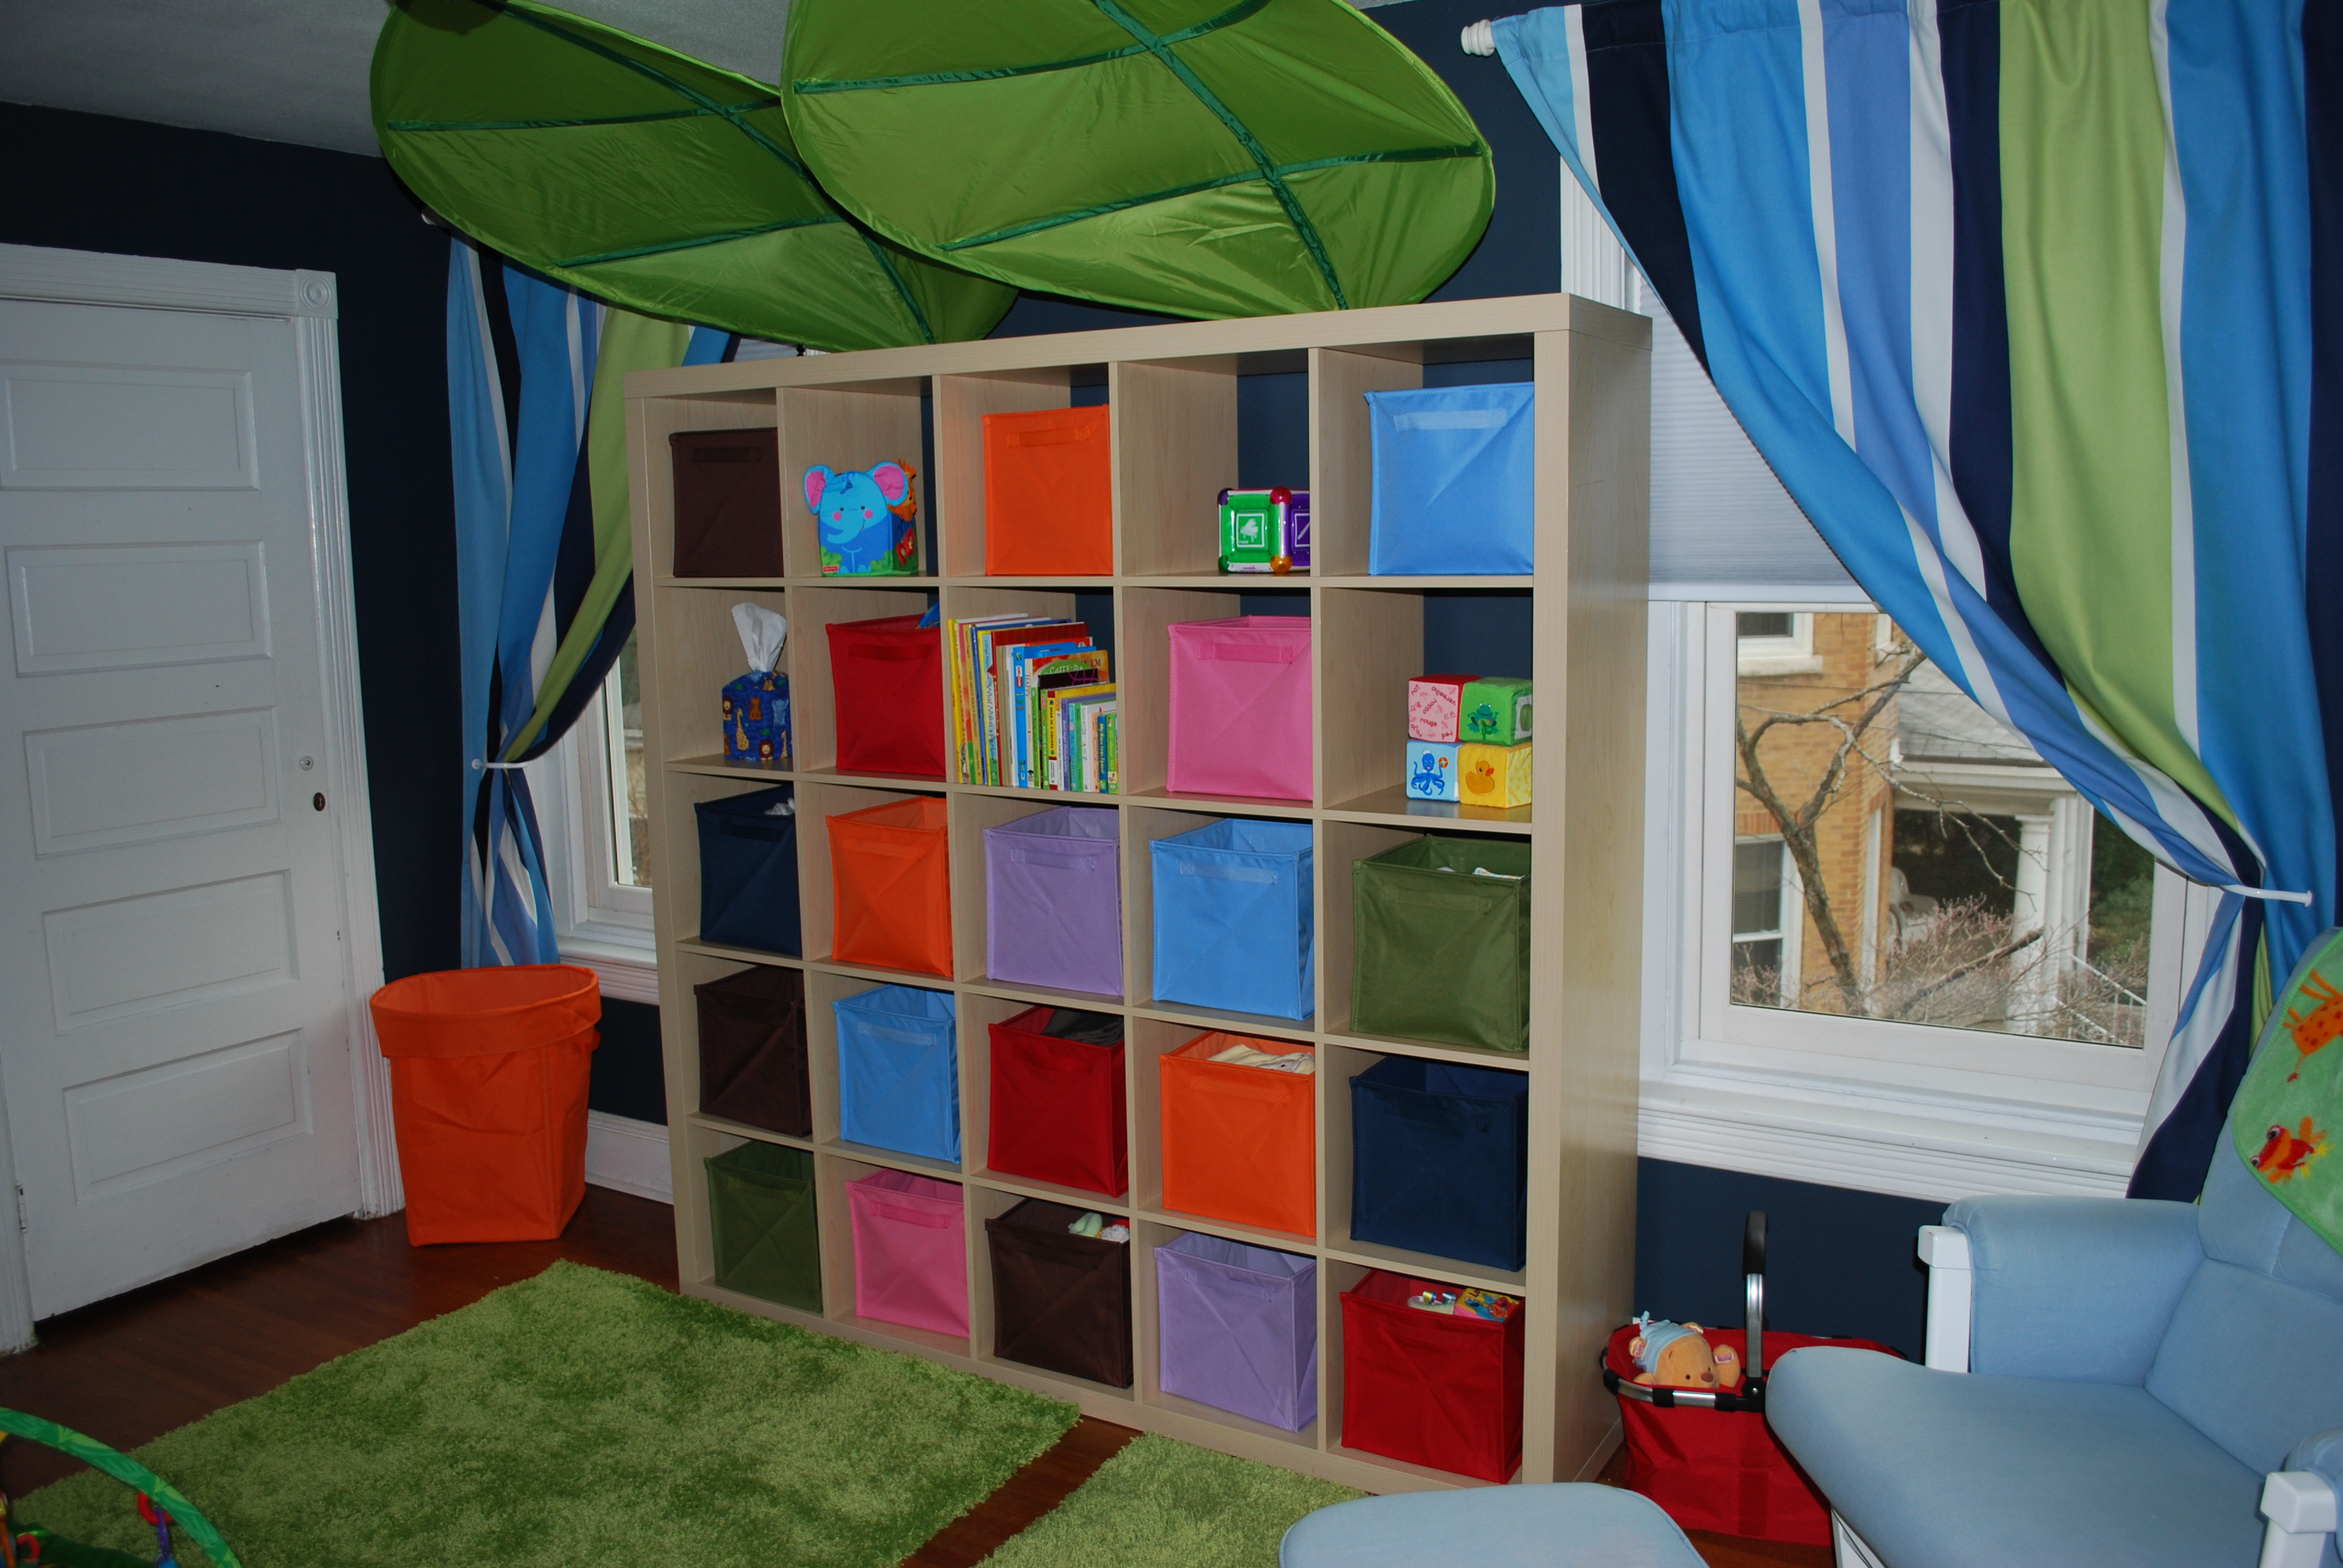 cream IKEA Expedit Bookcase with colorful boxes ideas with green carpet and blue curtains with vertical stripped